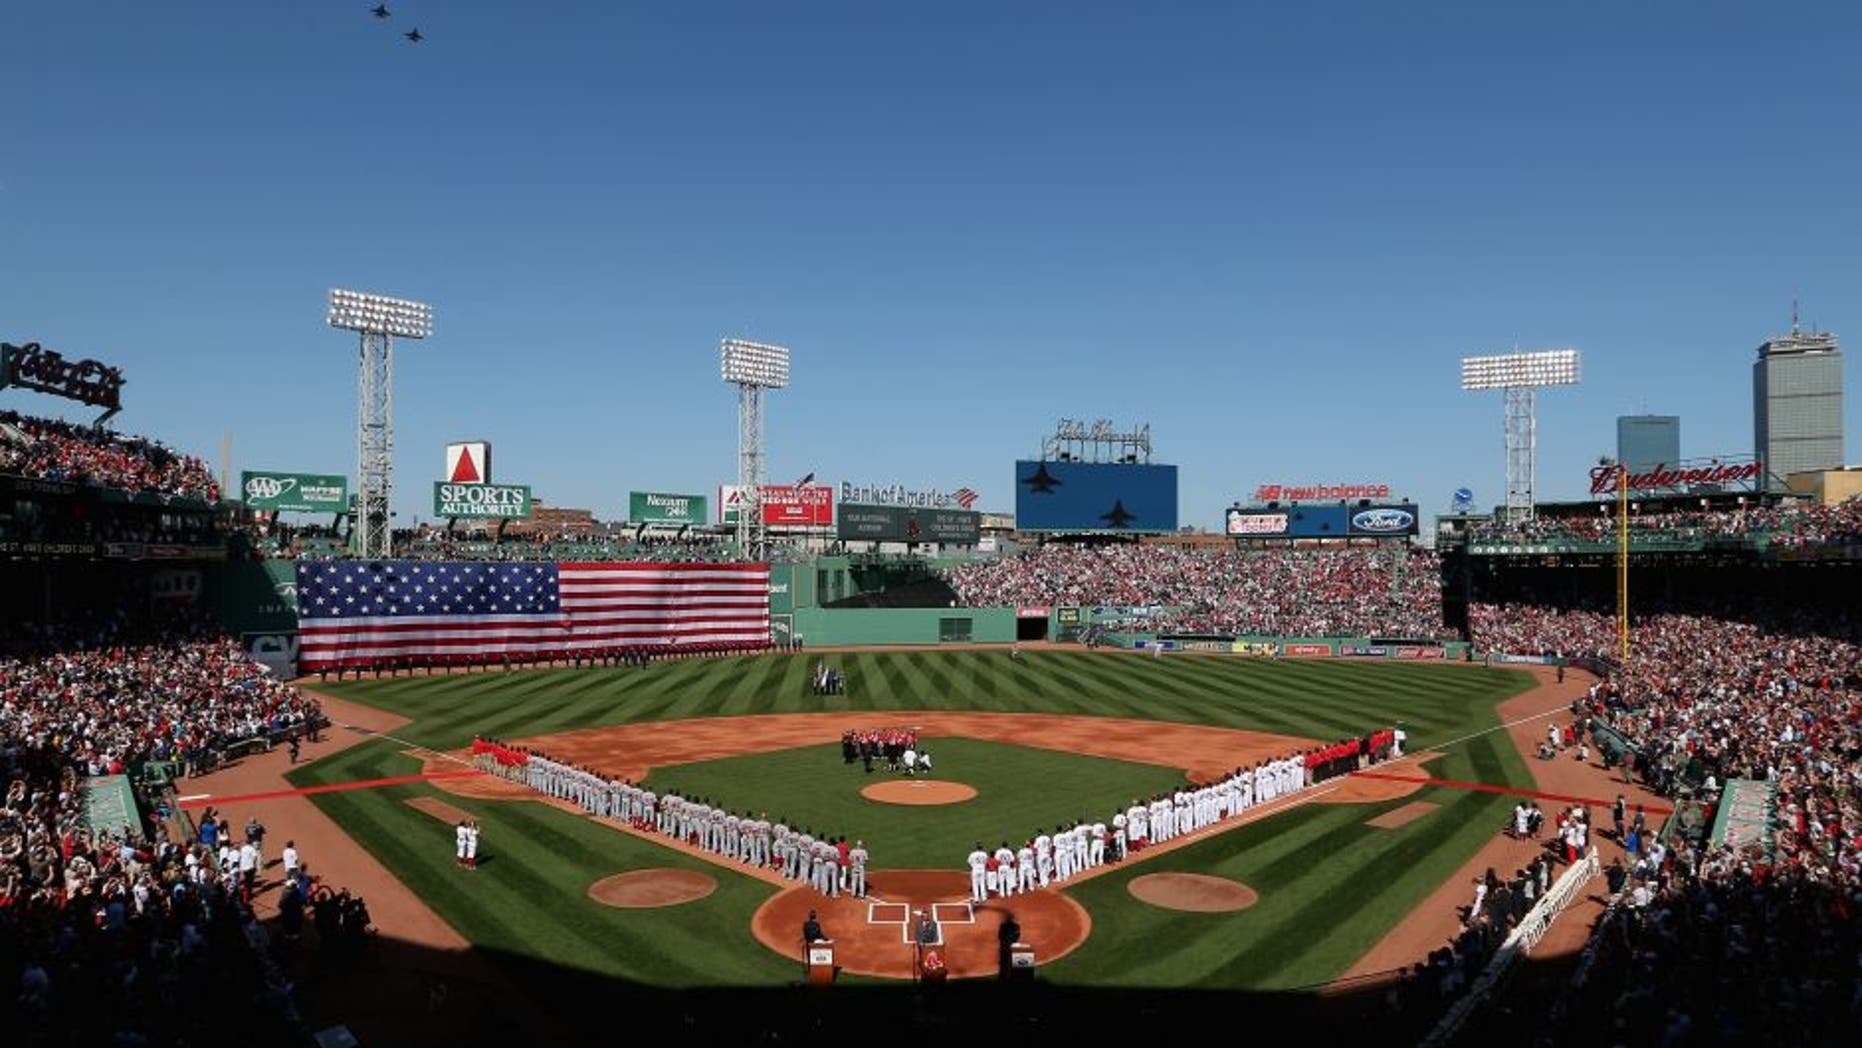 BOSTON, MA - APRIL 13: General view as the Boston Red Sox and the Washington Nationals stand on the field for the National Anthem before the game at Fenway Park on April 13, 2015 in Boston, Massachusetts. (Photo by Maddie Meyer/Getty Images)